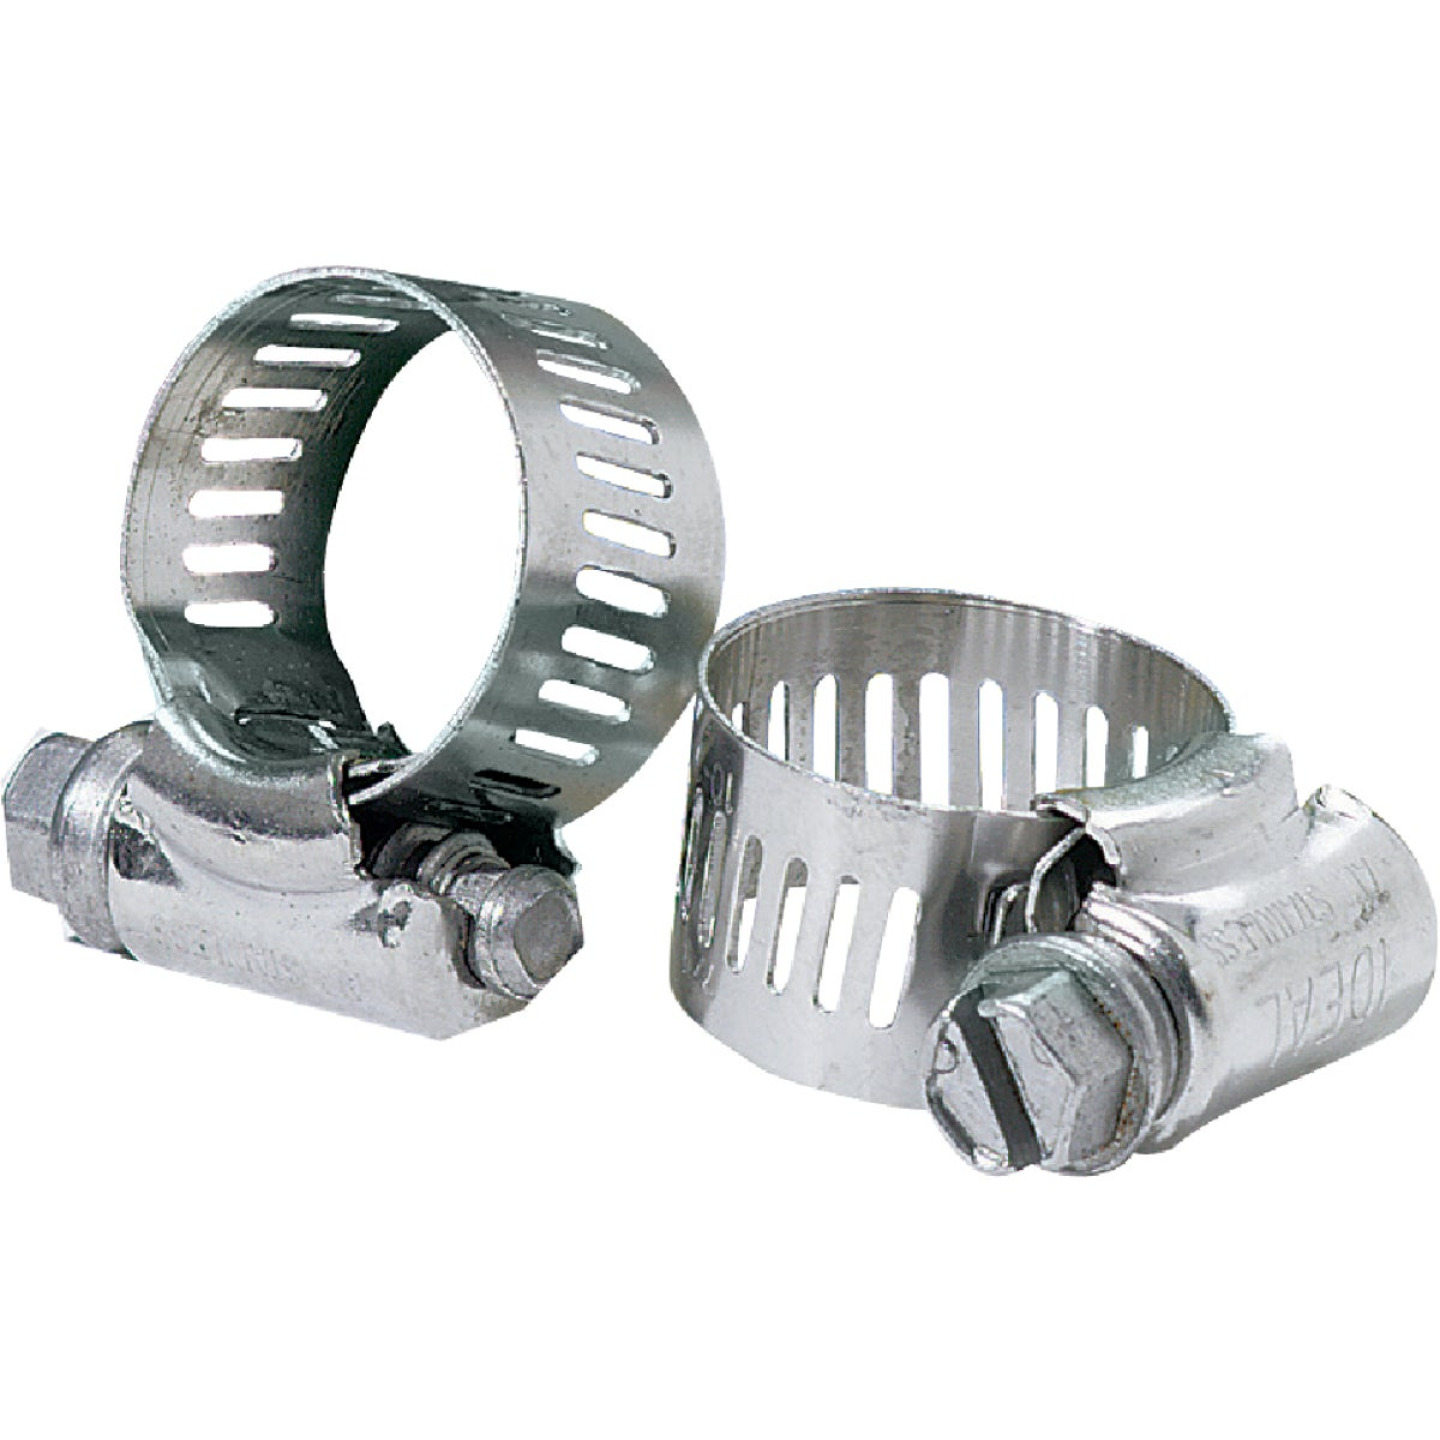 Ideal 4-1/2 In. - 6-1/2 In. 67 All Stainless Steel Hose Clamp Image 1